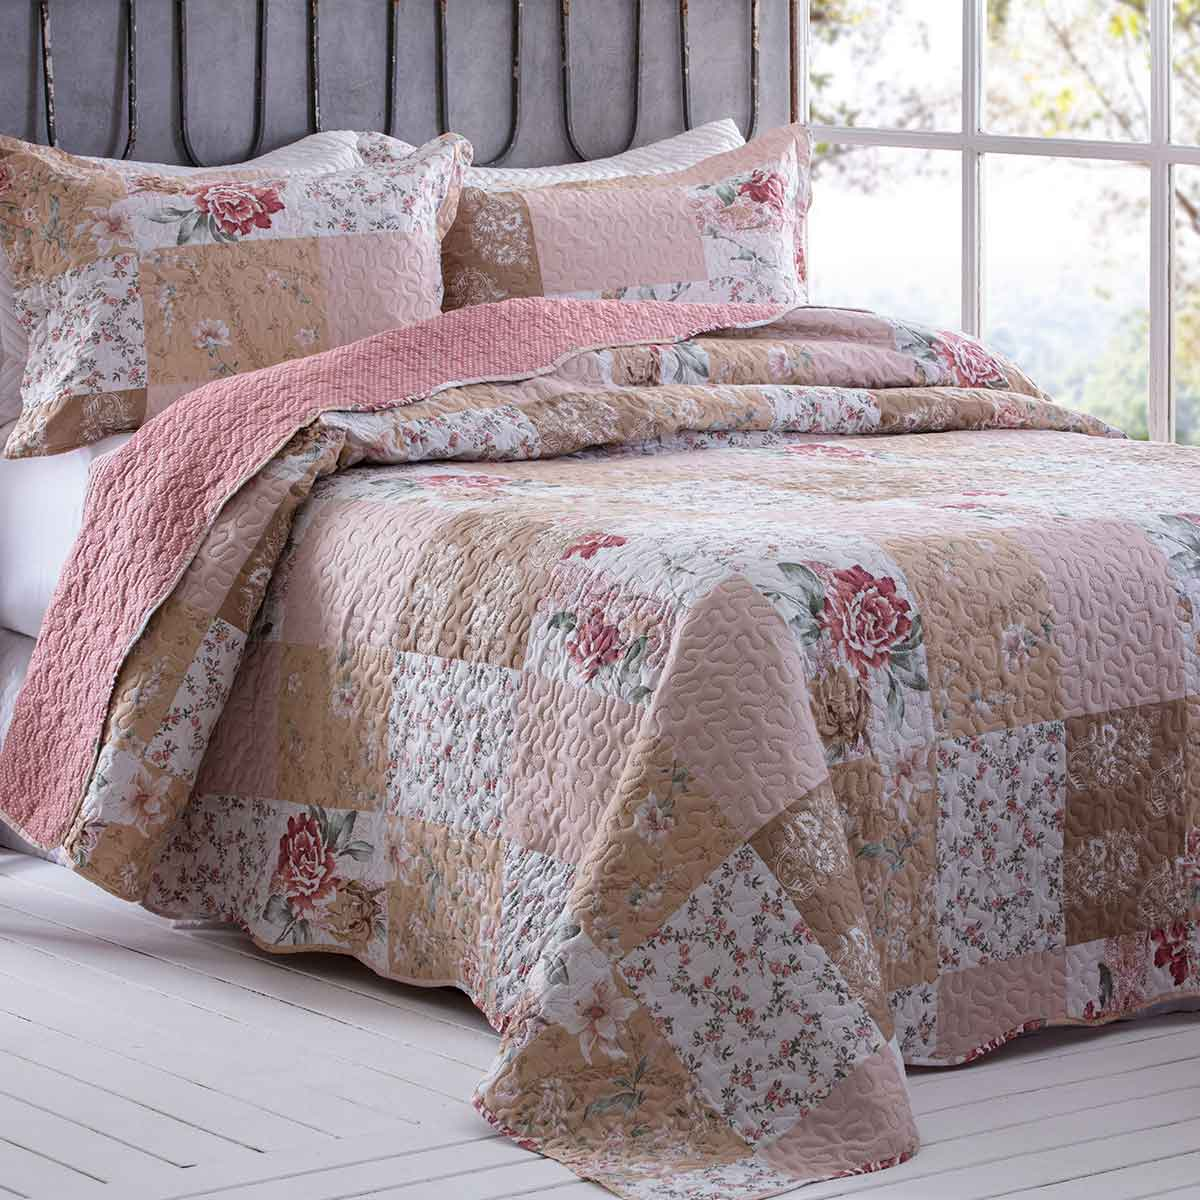 Cobreleito Patchwork Ultra Queen 3 Pcs Estela 8